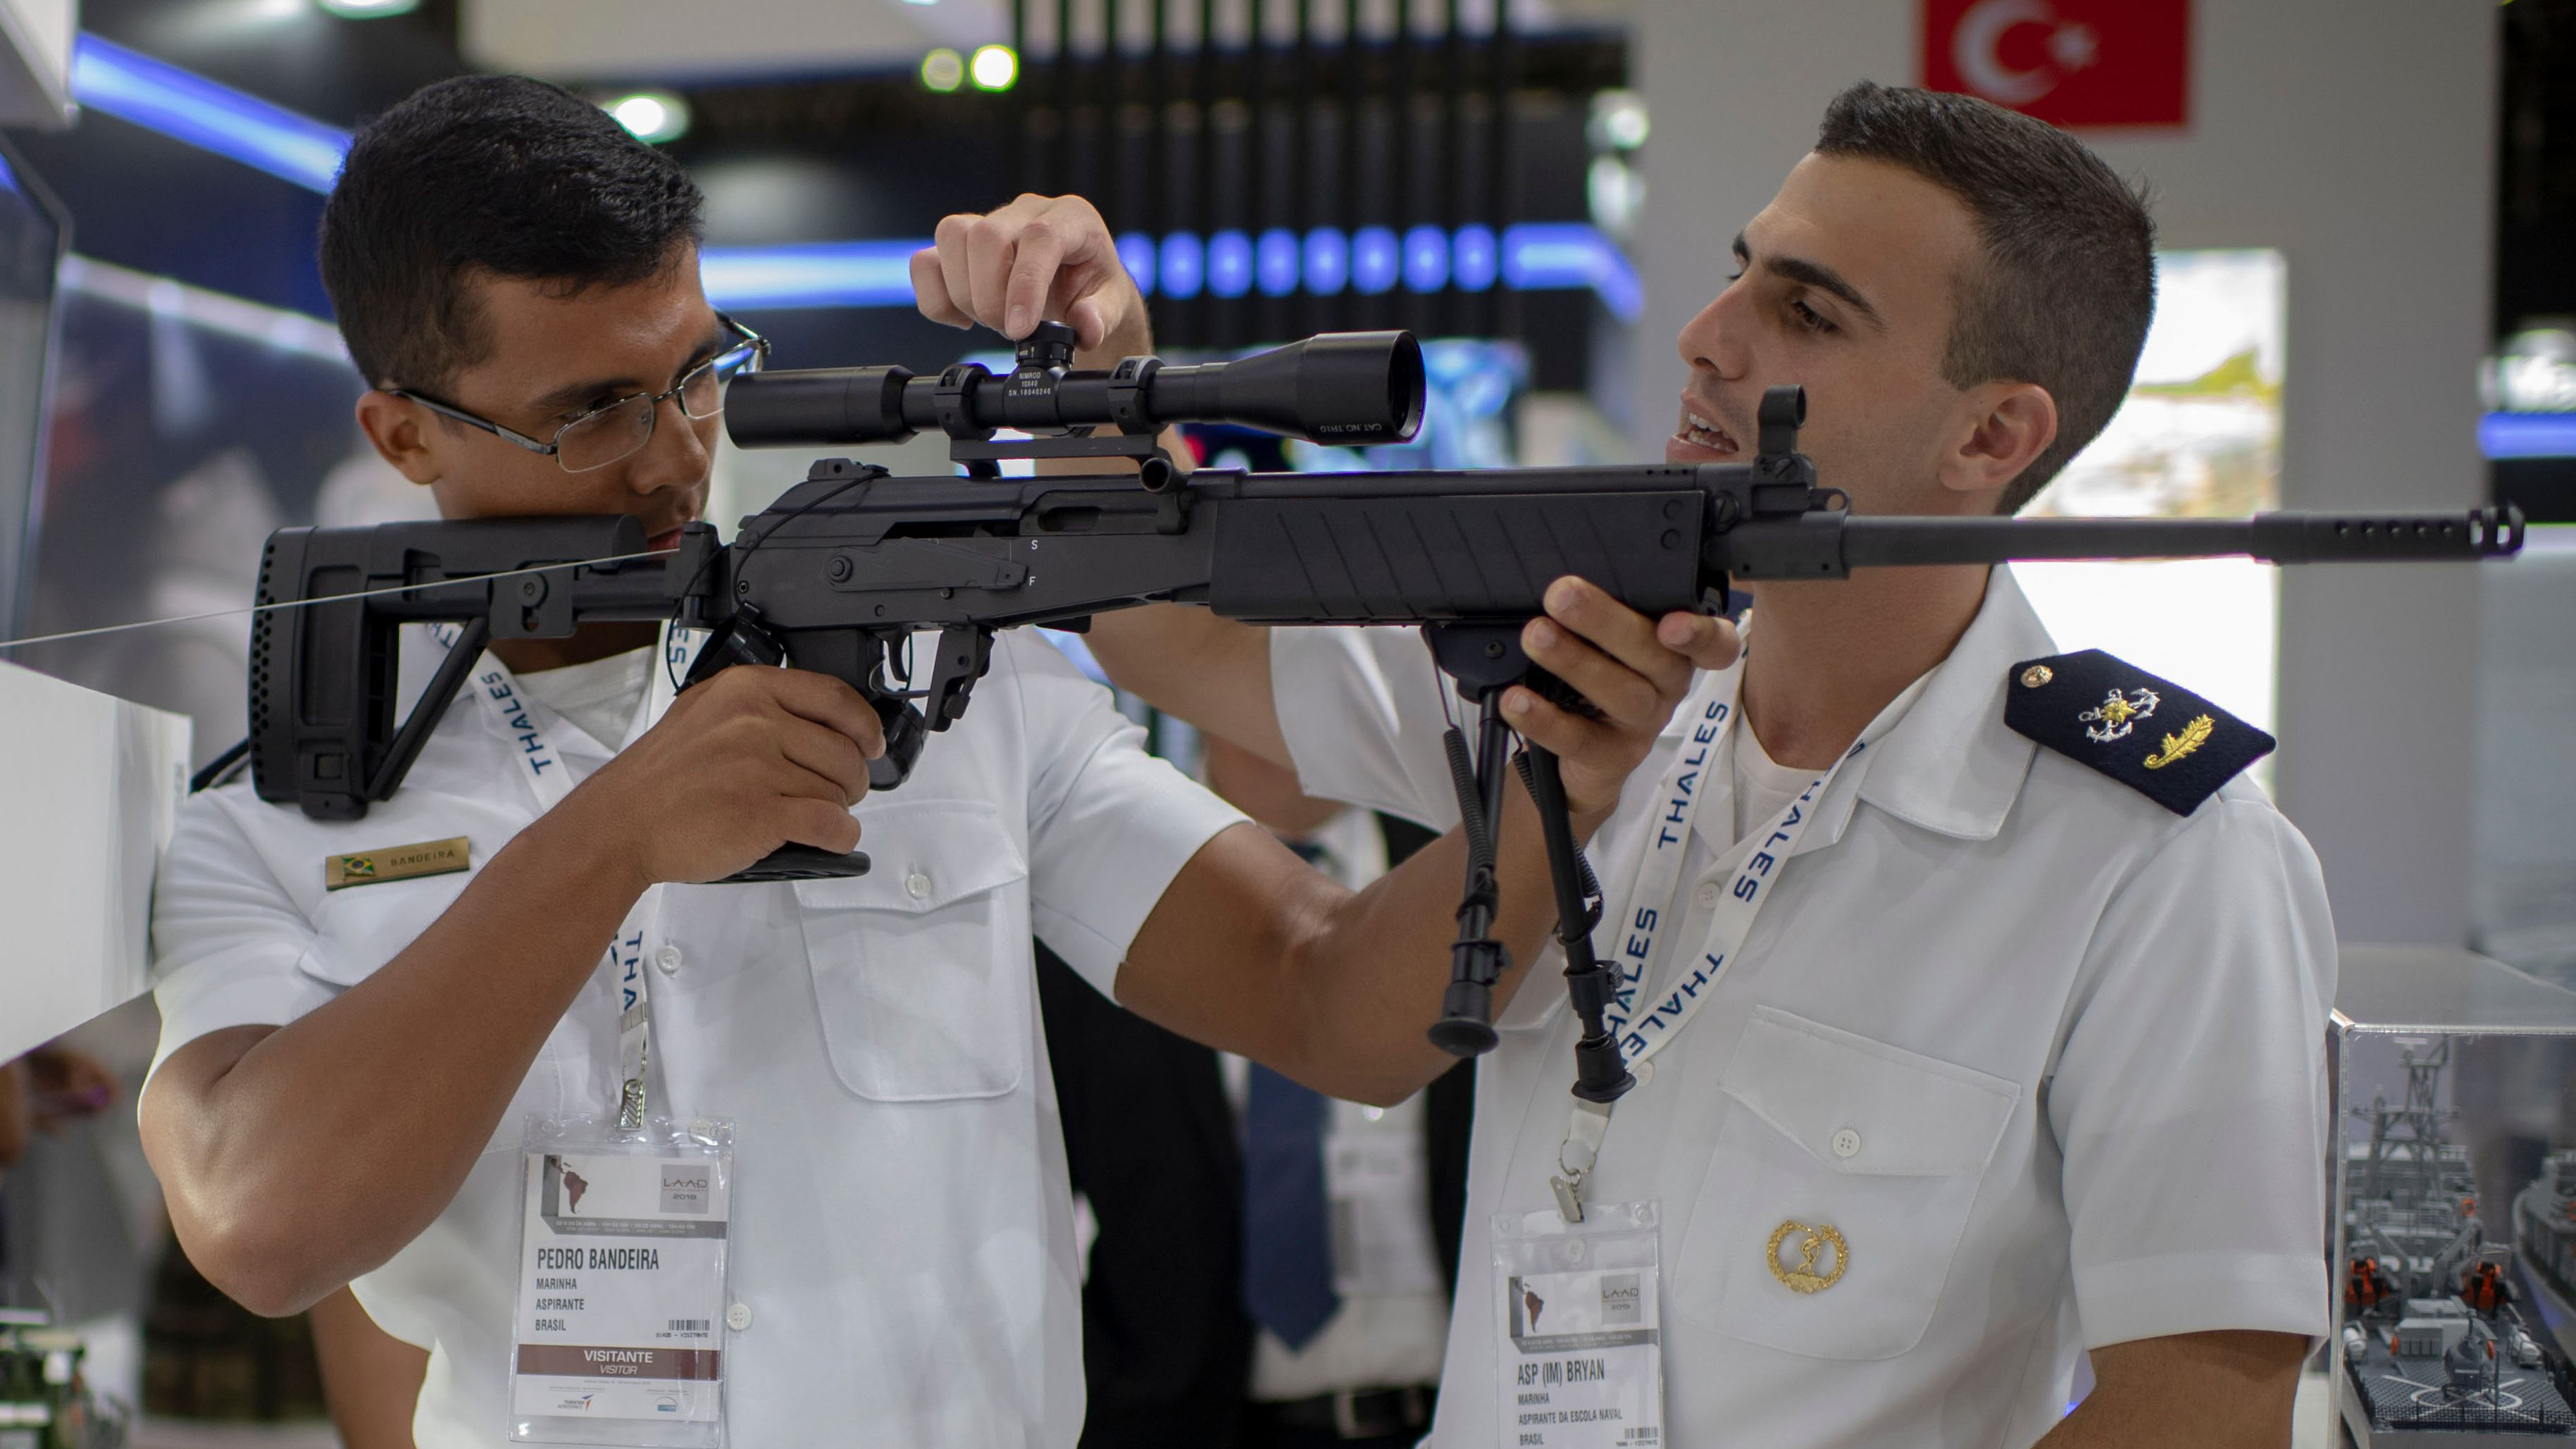 Brazilian navy members inspect the riflescope of a firearm during the Defense and Security International Fair 2019 (LAAD 2019) at Riocentro Expo Center in Rio de Janeiro, Brazil, on April 02, 2019. (MAURO PIMENTEL/AFP/Getty Images)